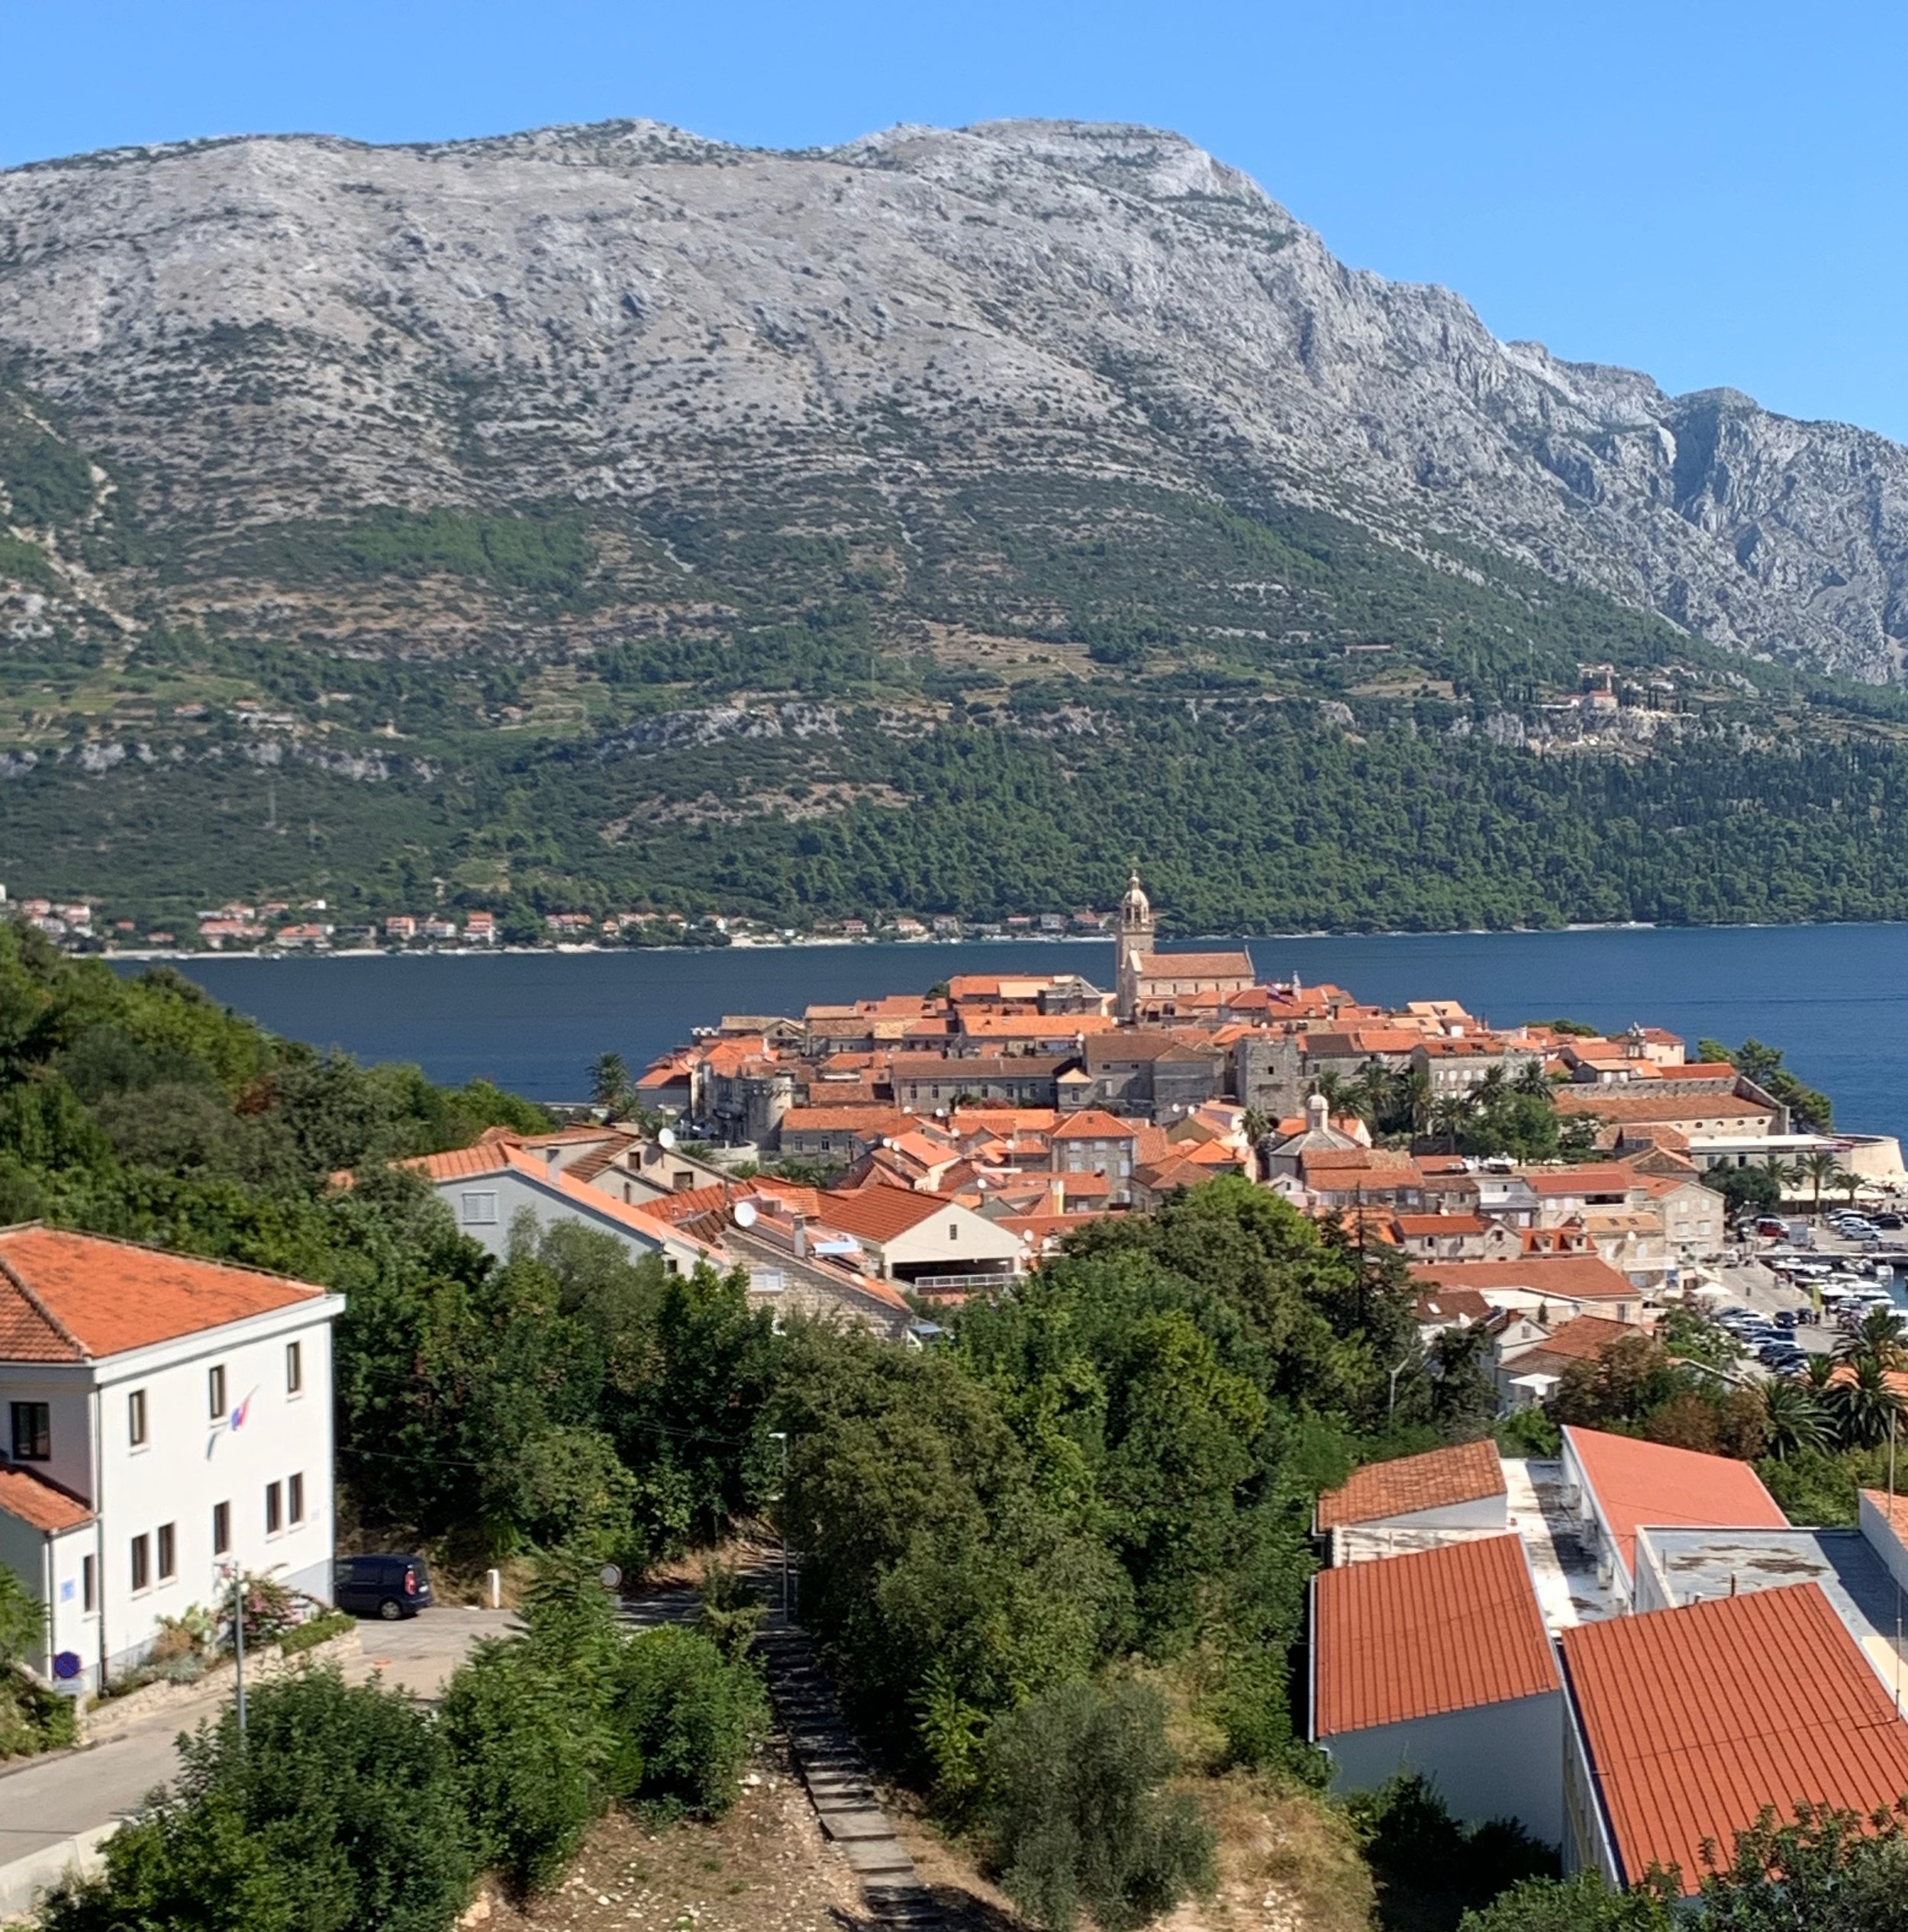 View to Old Town, Korcula from the Tommy Supermarket Parking